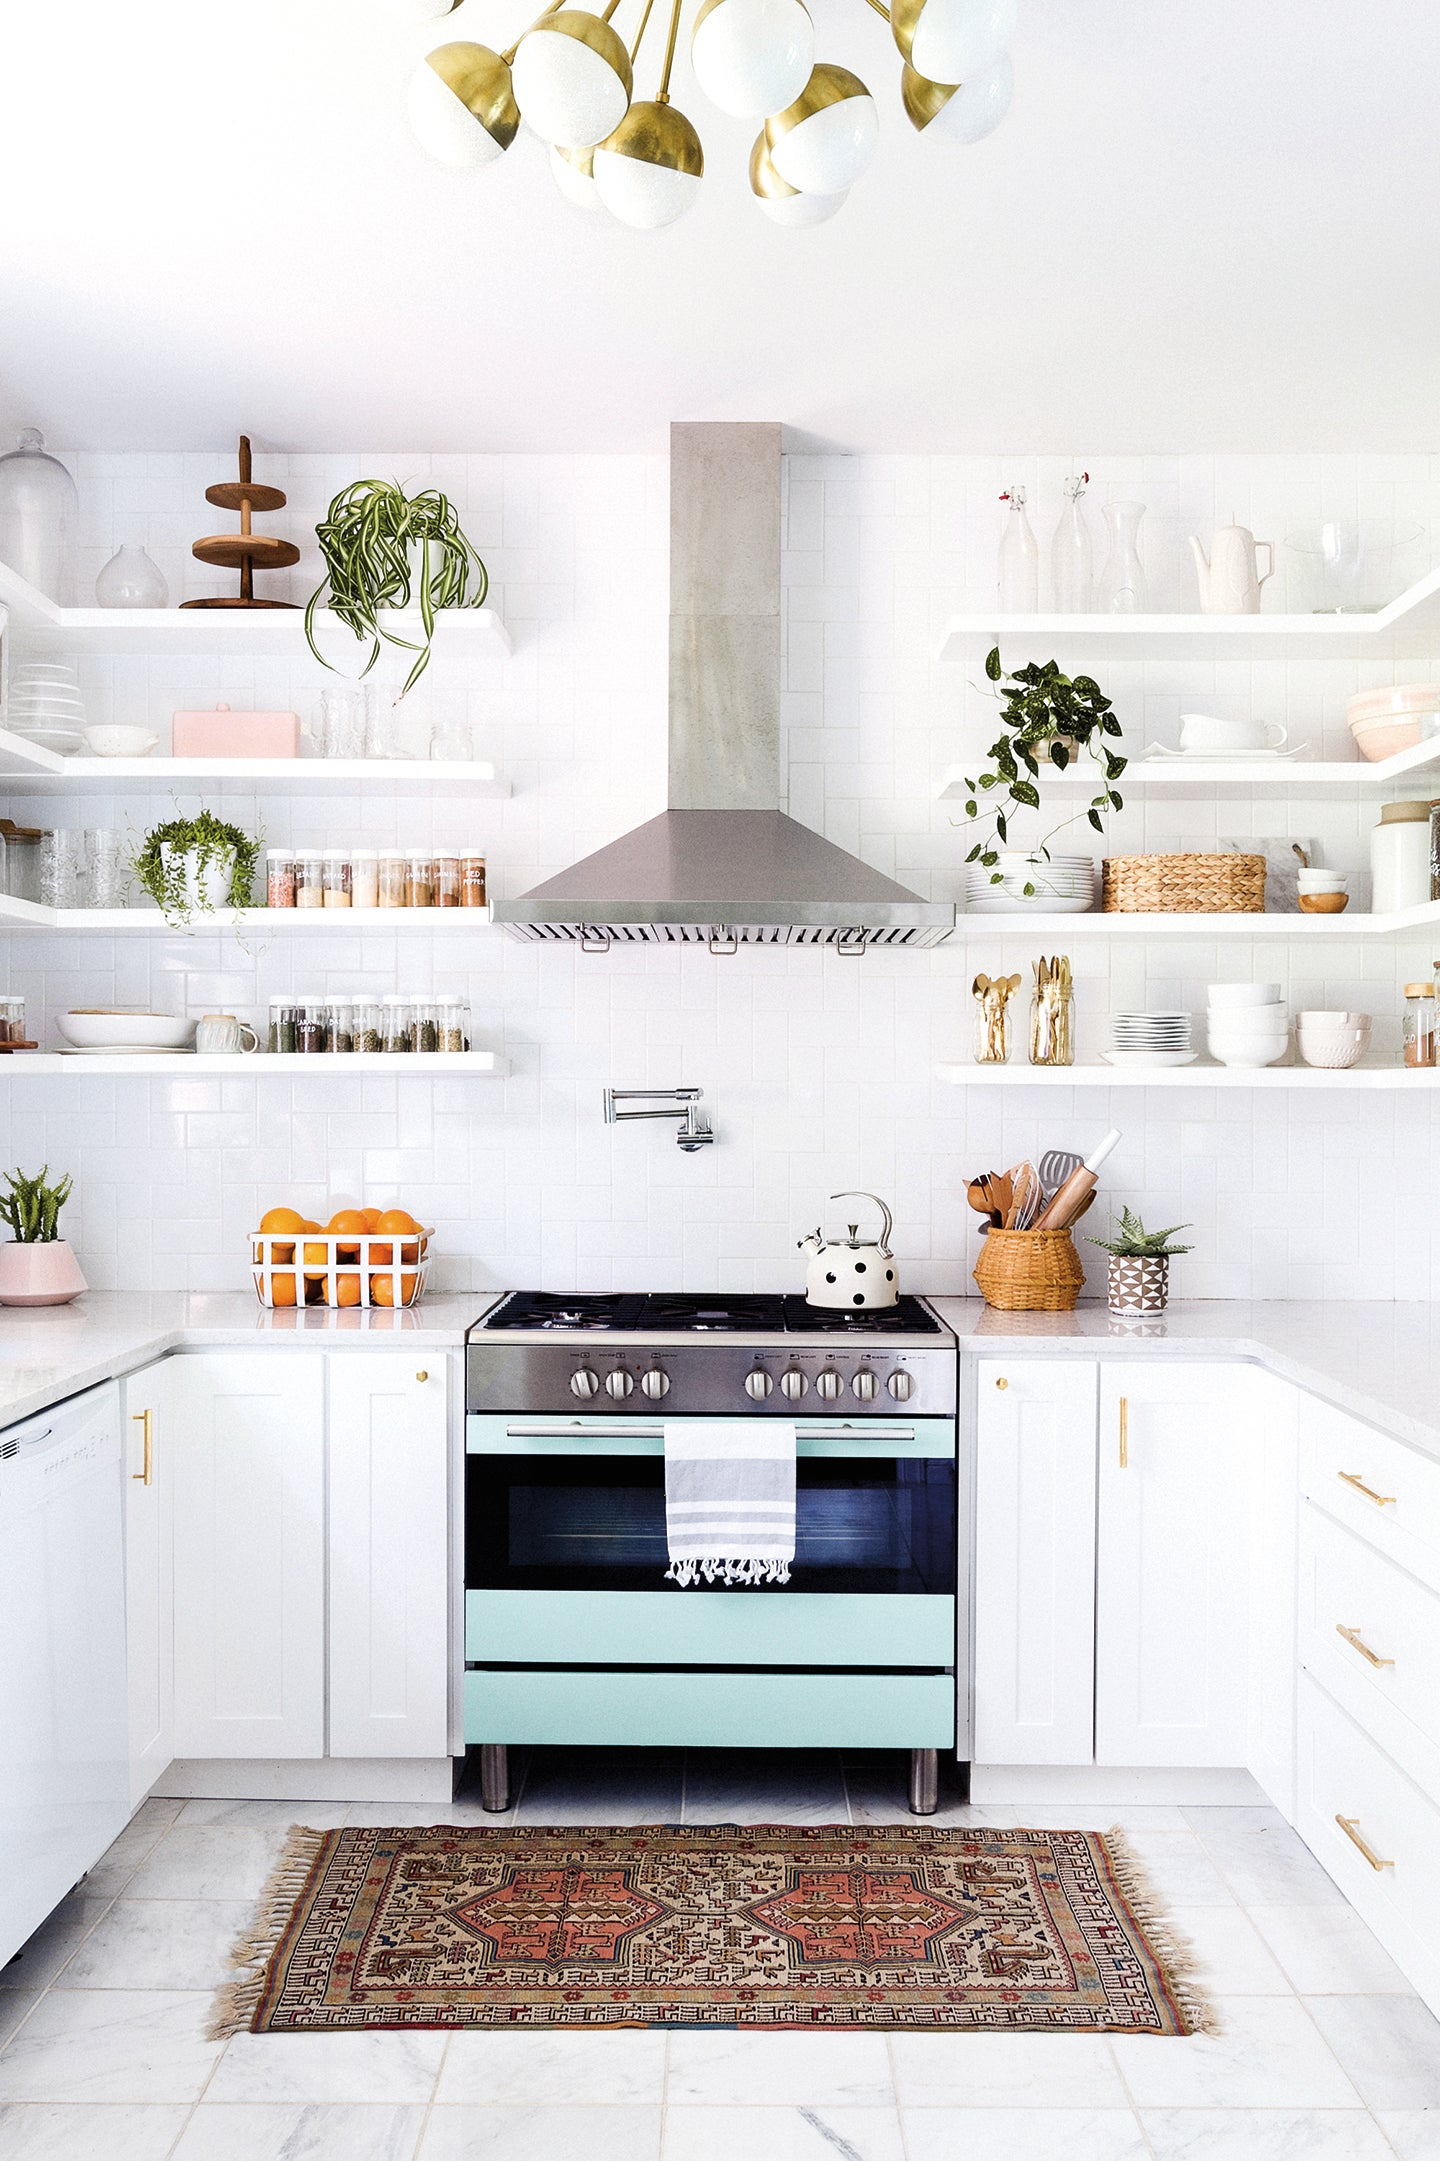 White kitchen with blue oven and open shelving